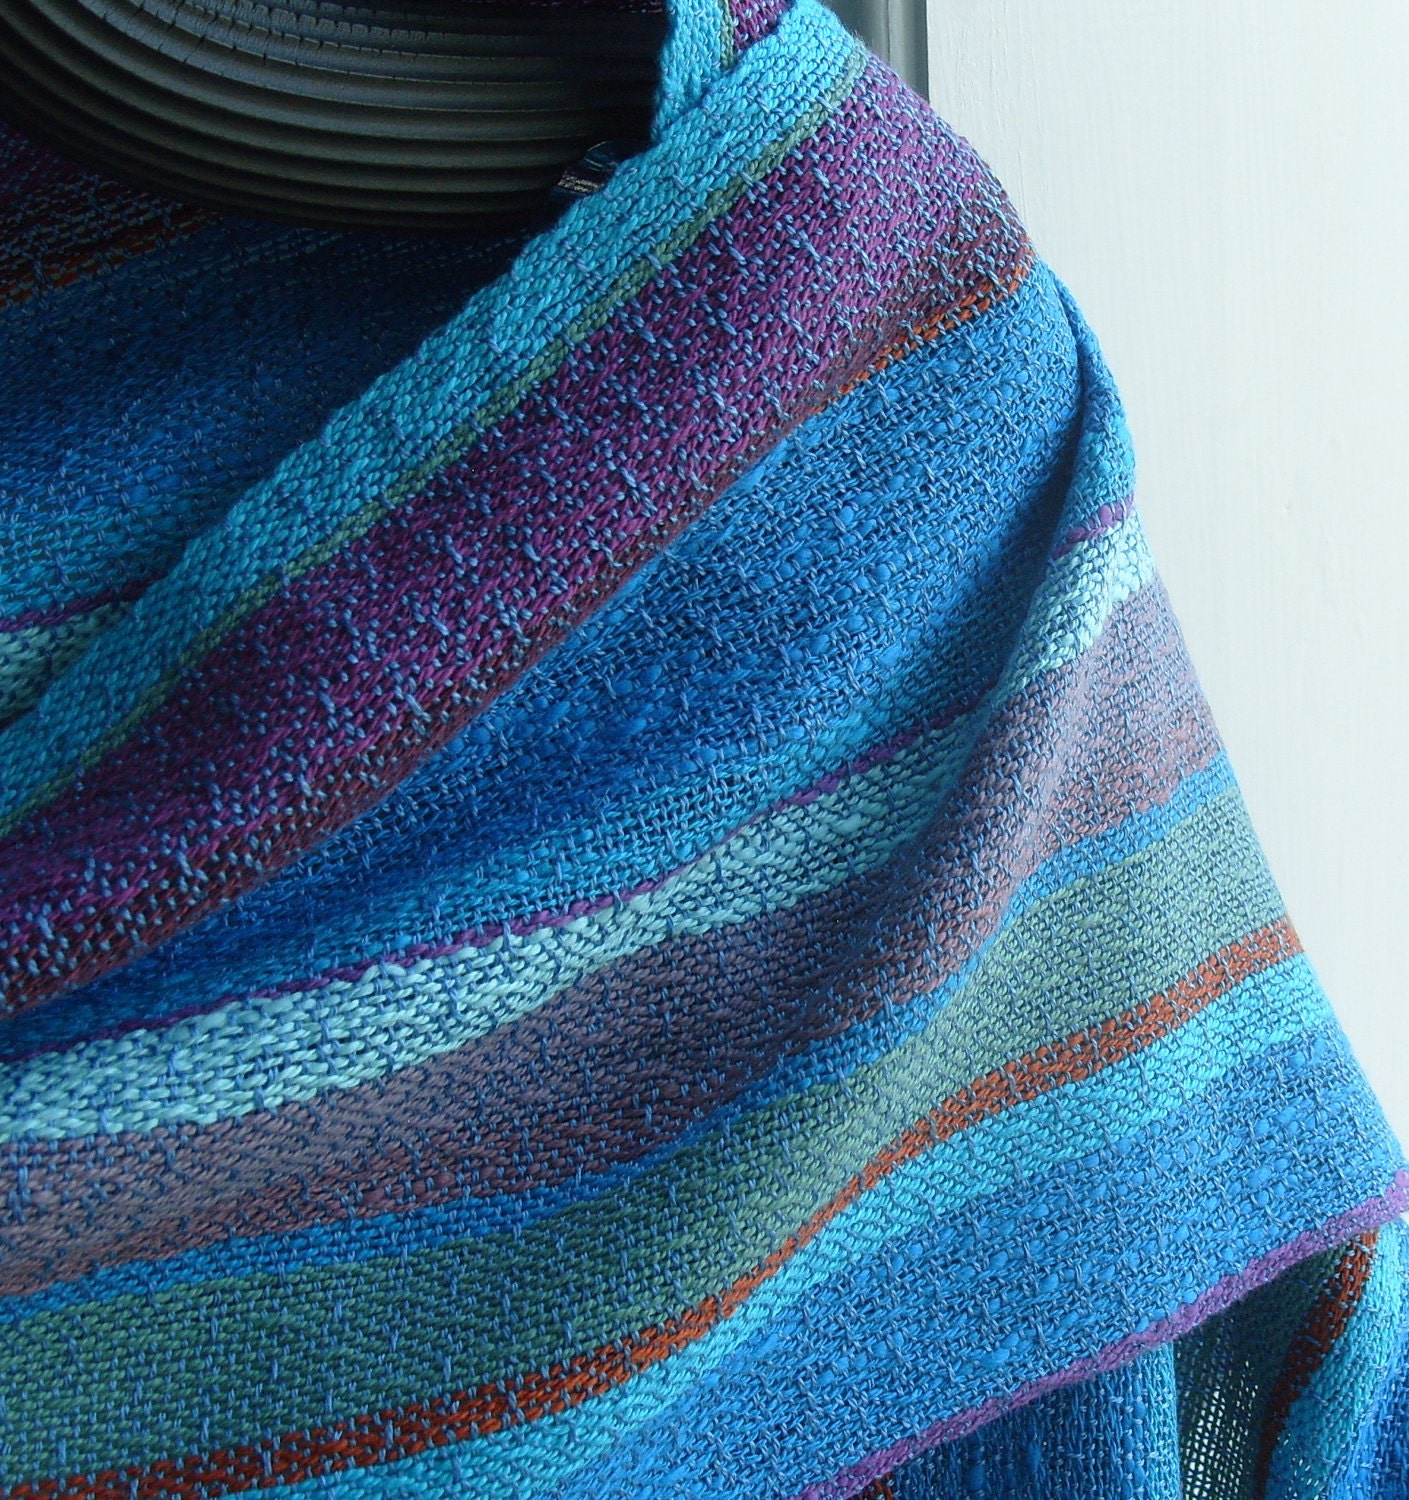 Handwoven Shawl, Woven Scarf, Wrap, Ocean Storm... - barefootweaver